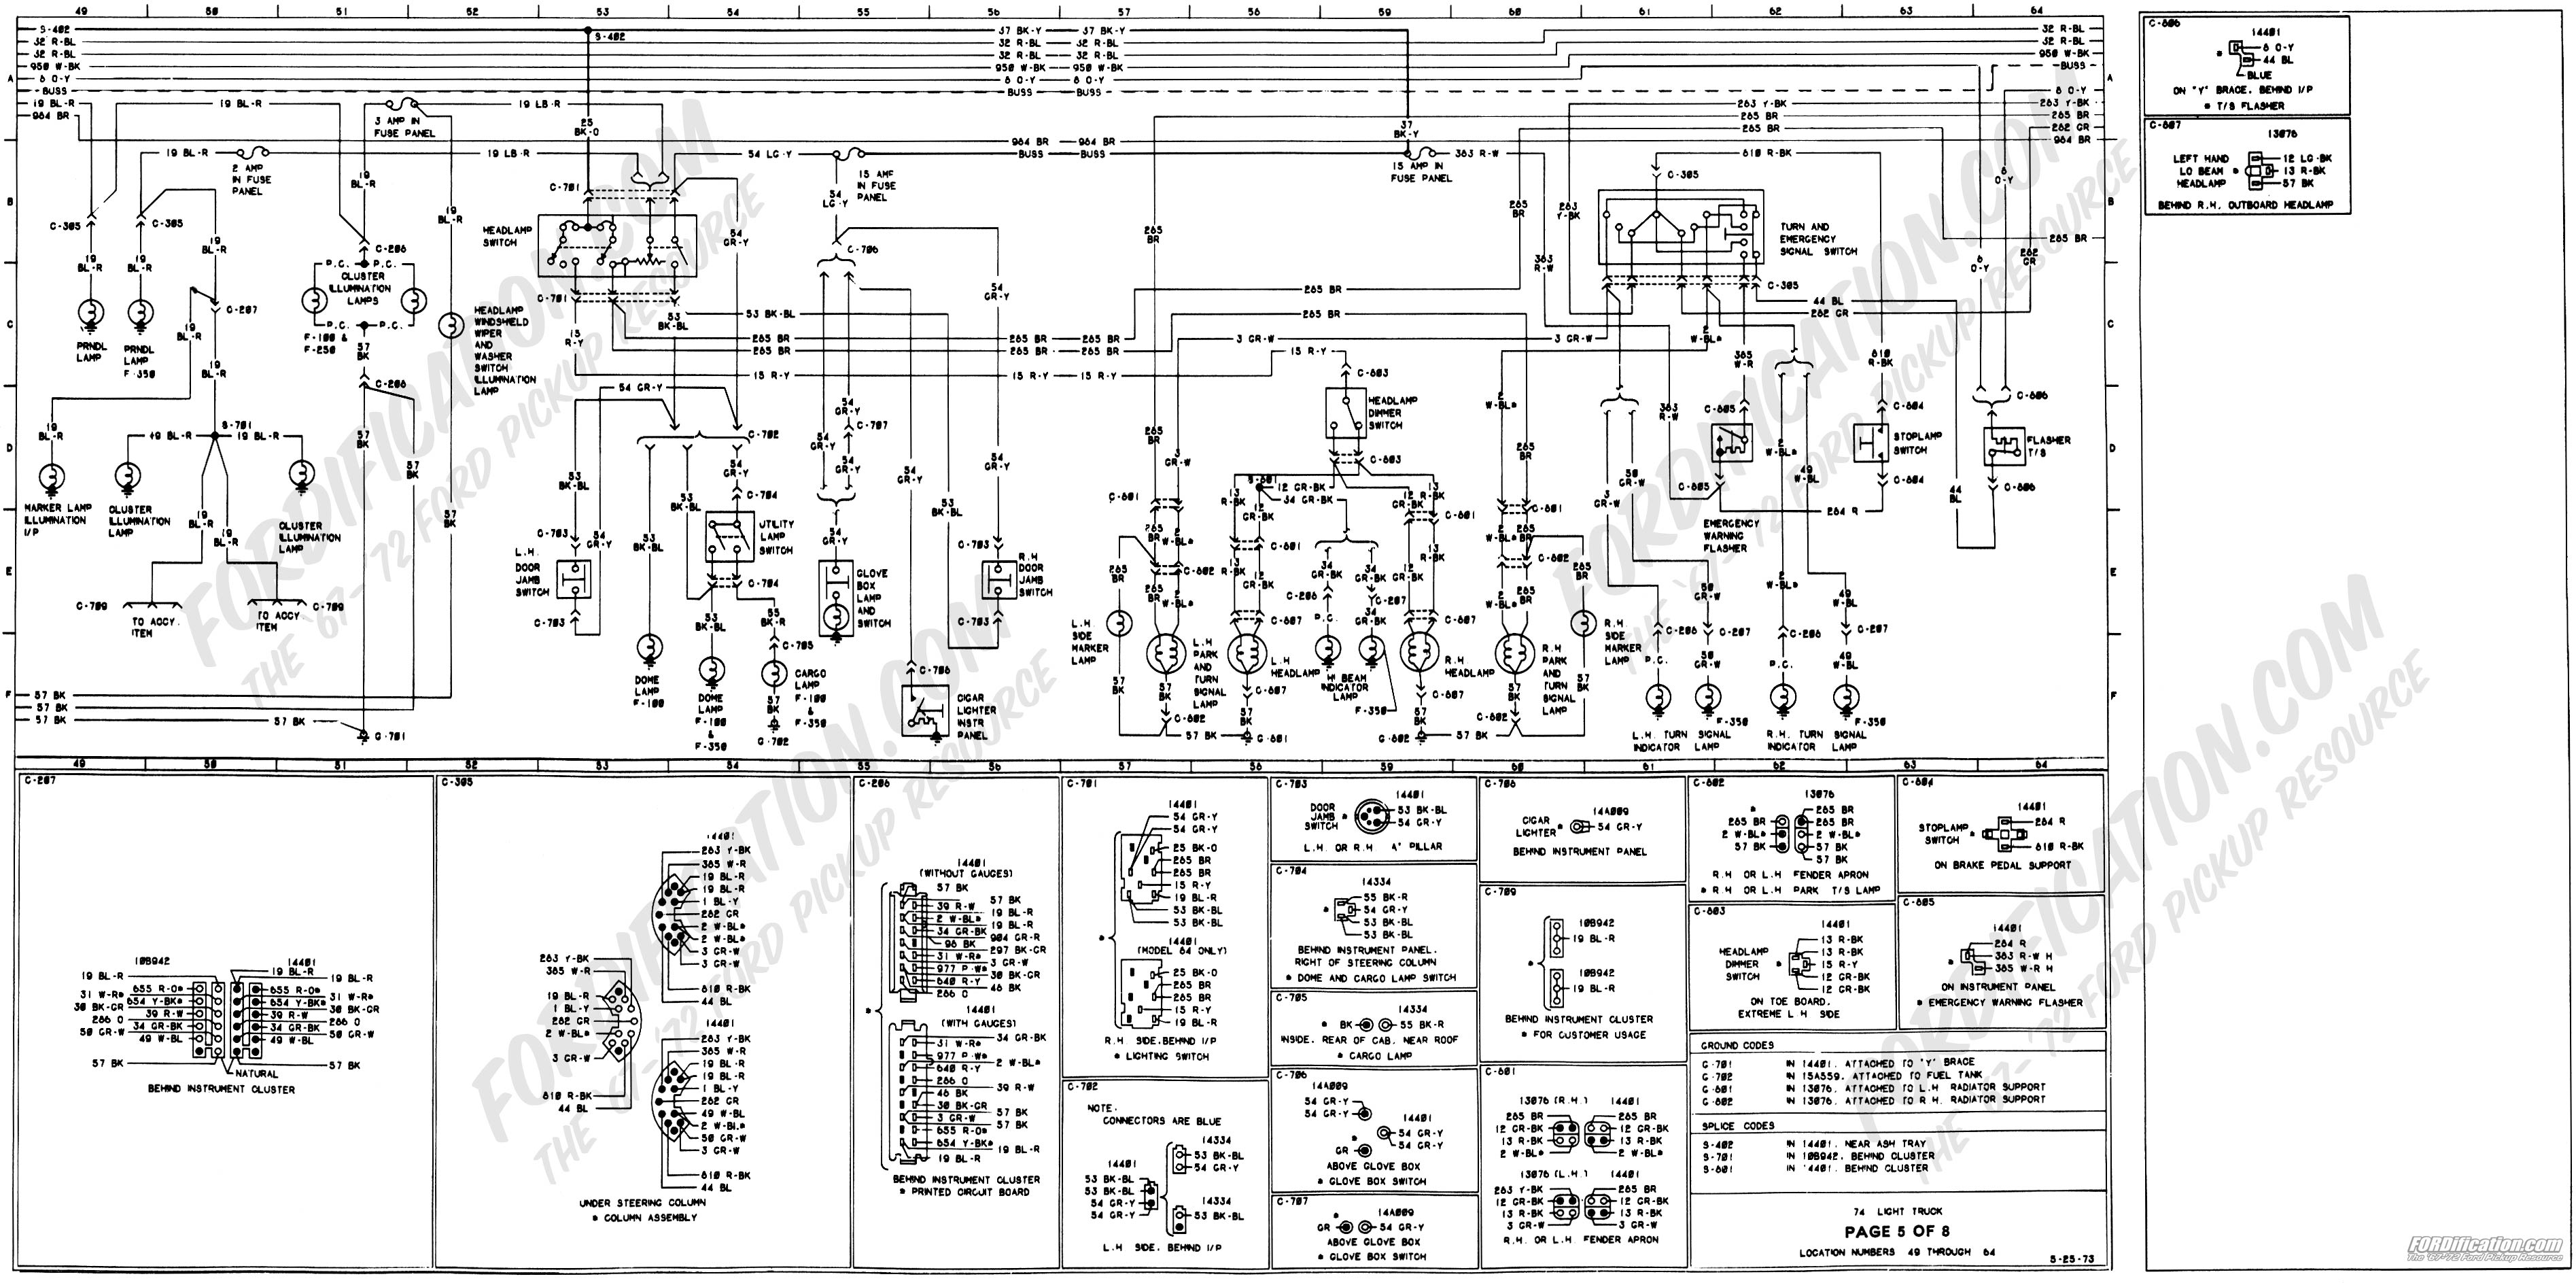 1973 1979 Ford Truck Wiring Diagrams Schematics 73 Chevy 350 Starter Diagram 3790 X 1887 861k